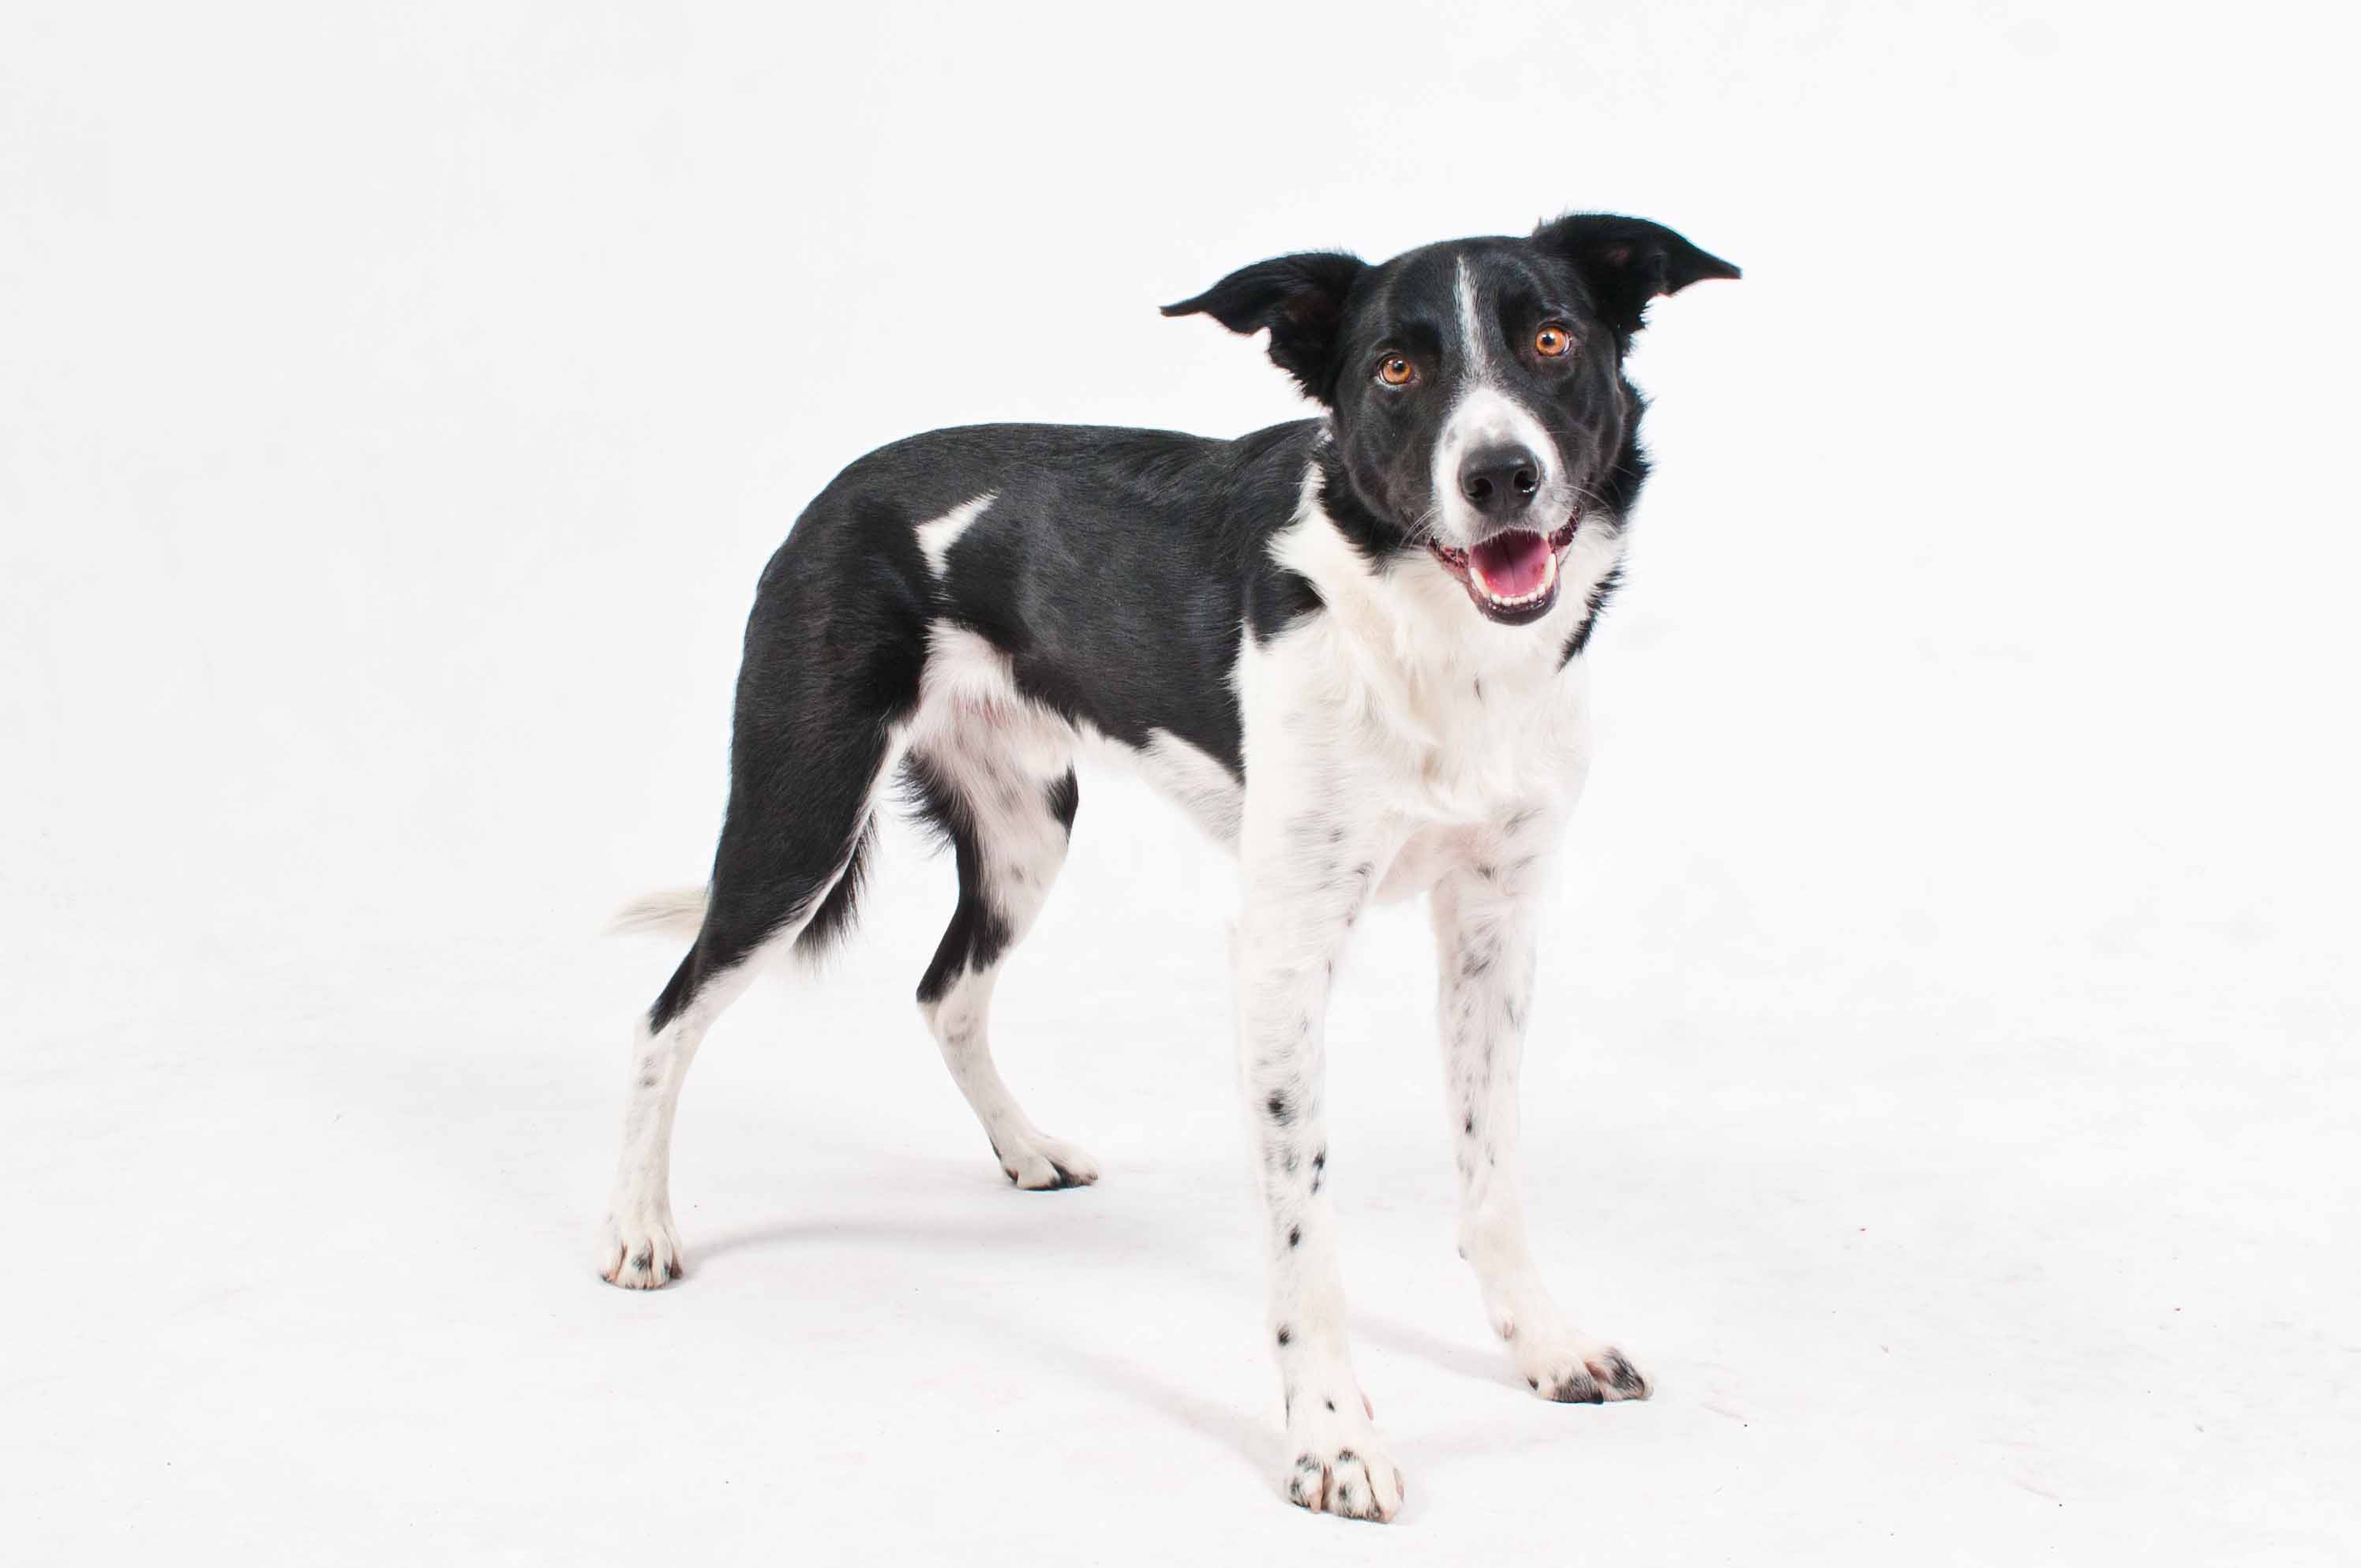 Keen - Smooth Coat Border Collie